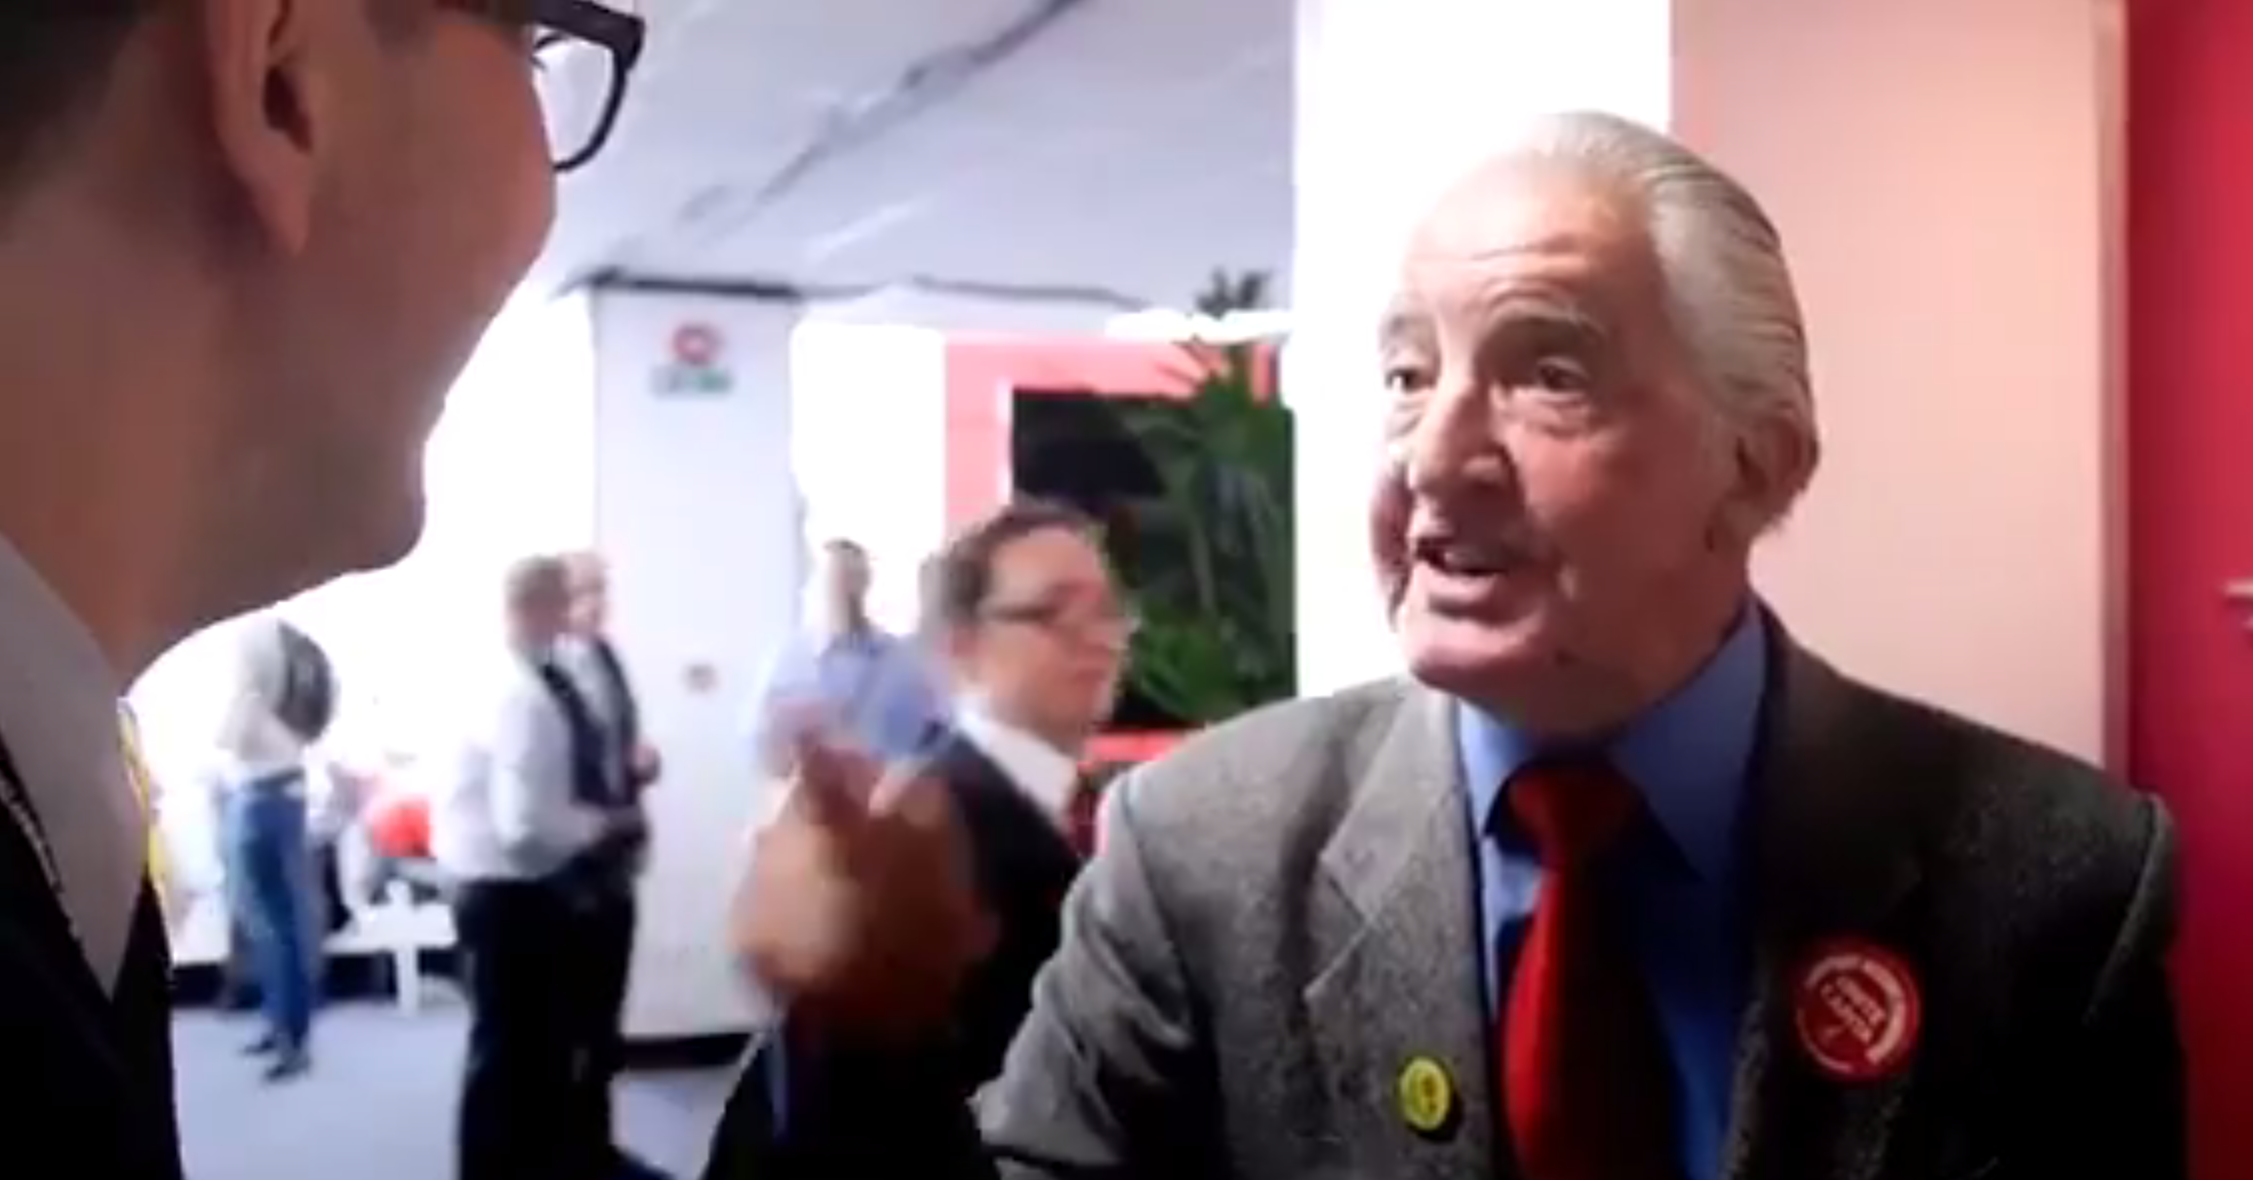 Watch: Dennis Skinner just taught a pompous journalist a lesson they should never forget at Labour Conference